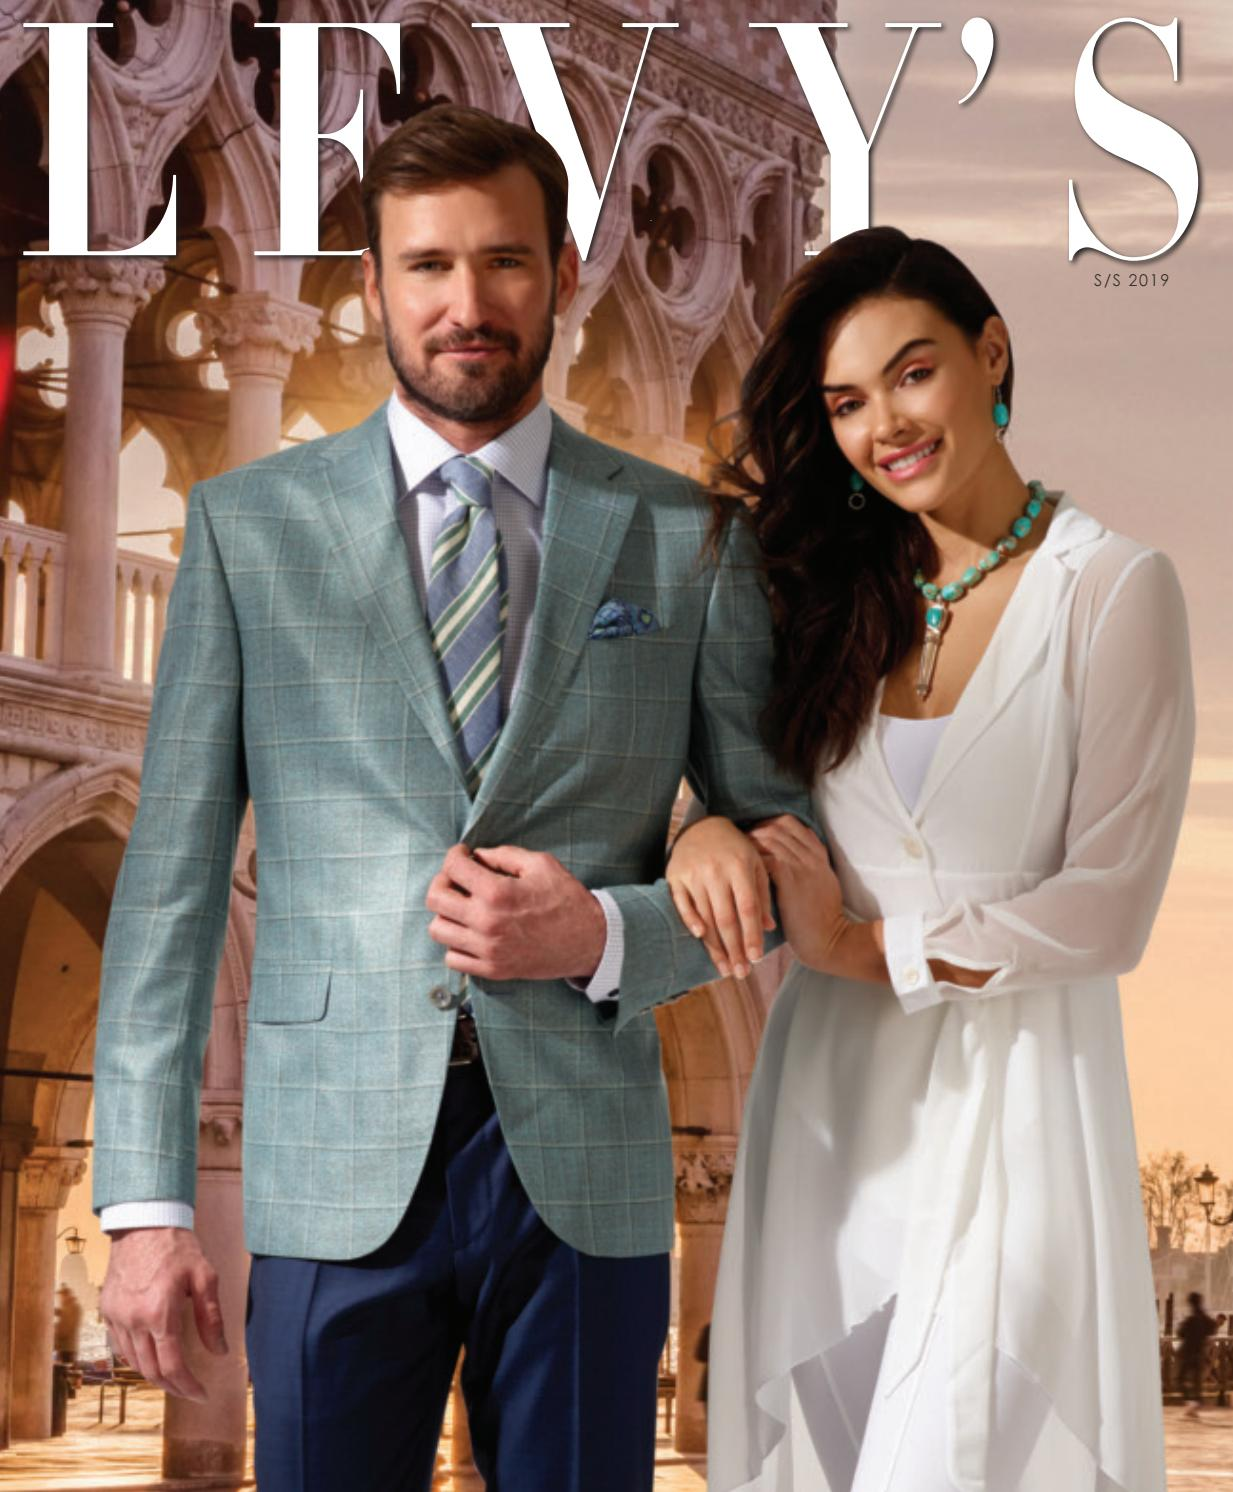 5bca9cccb2bf21 Levy's: Spring/Summer 2019 by Wainscot Media - issuu